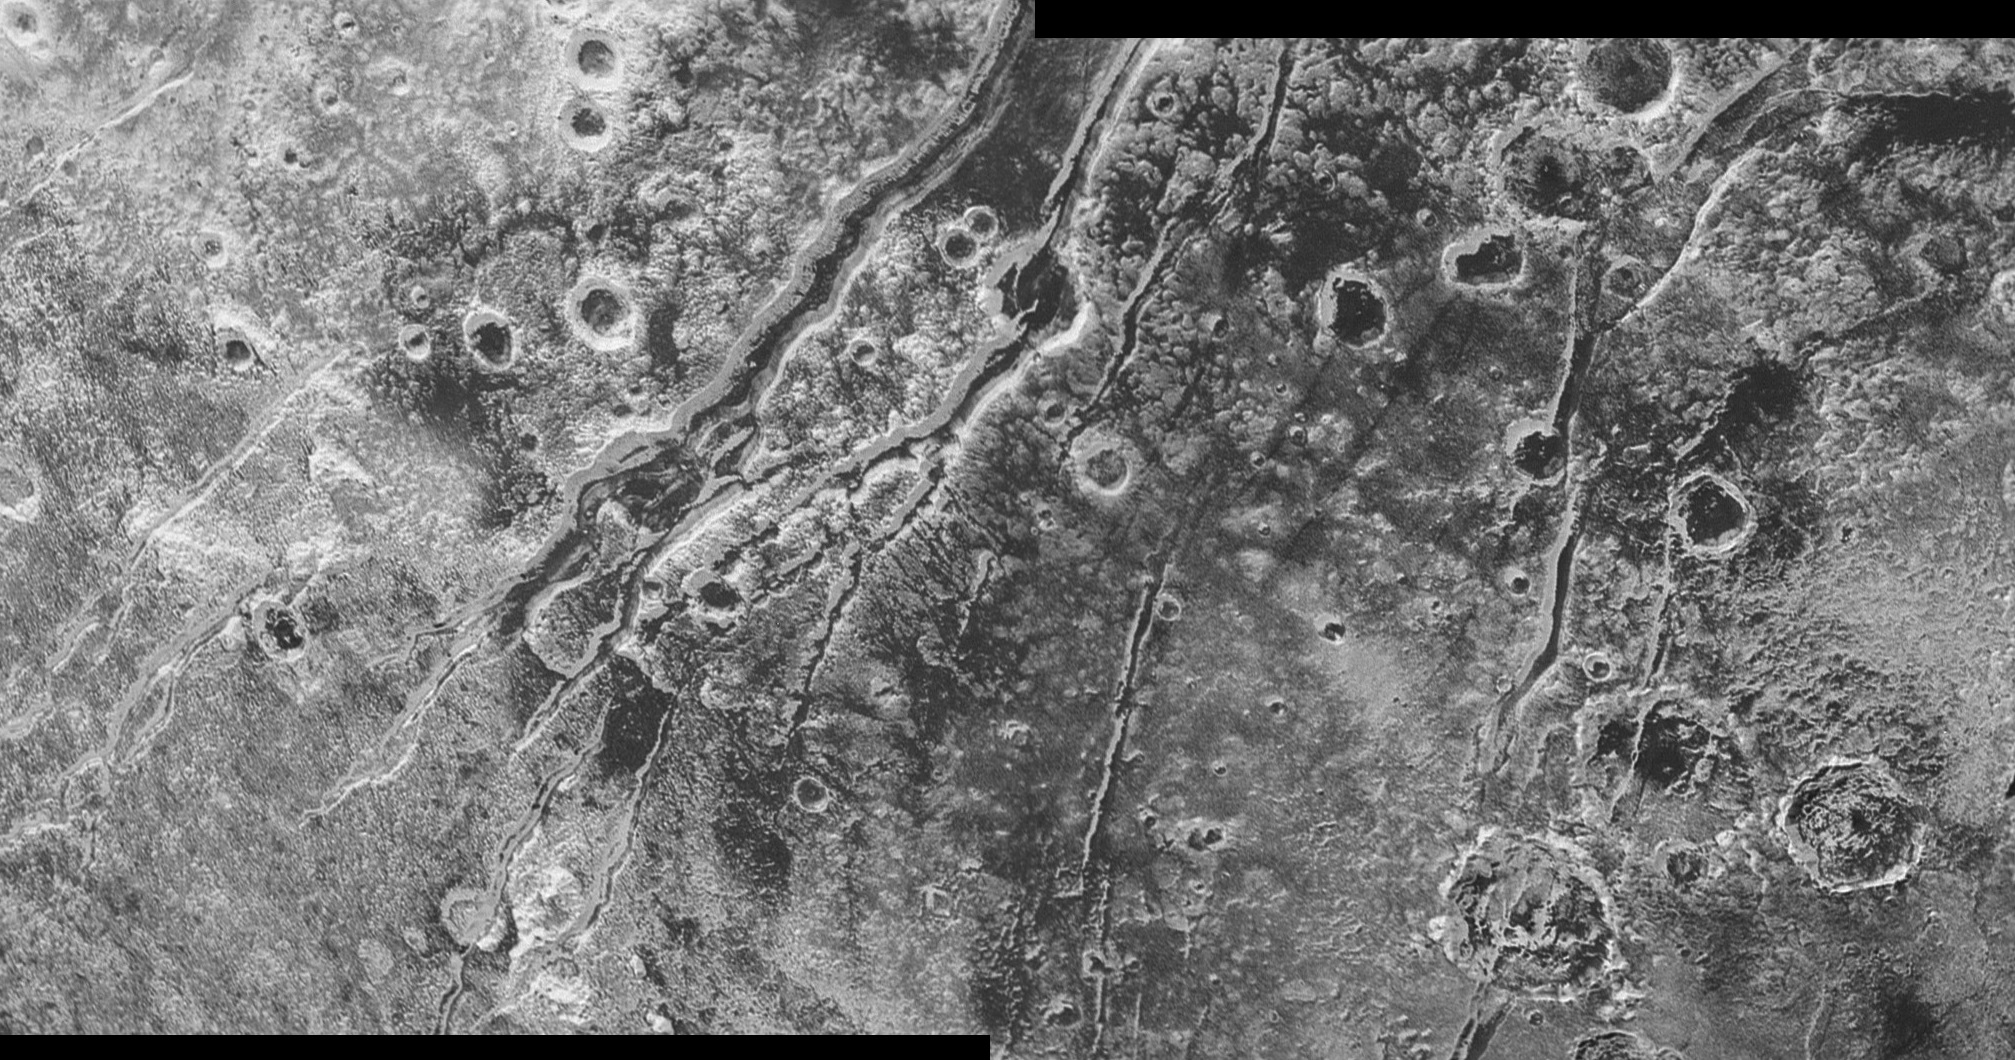 Does a subsurface ocean exist on Pluto?